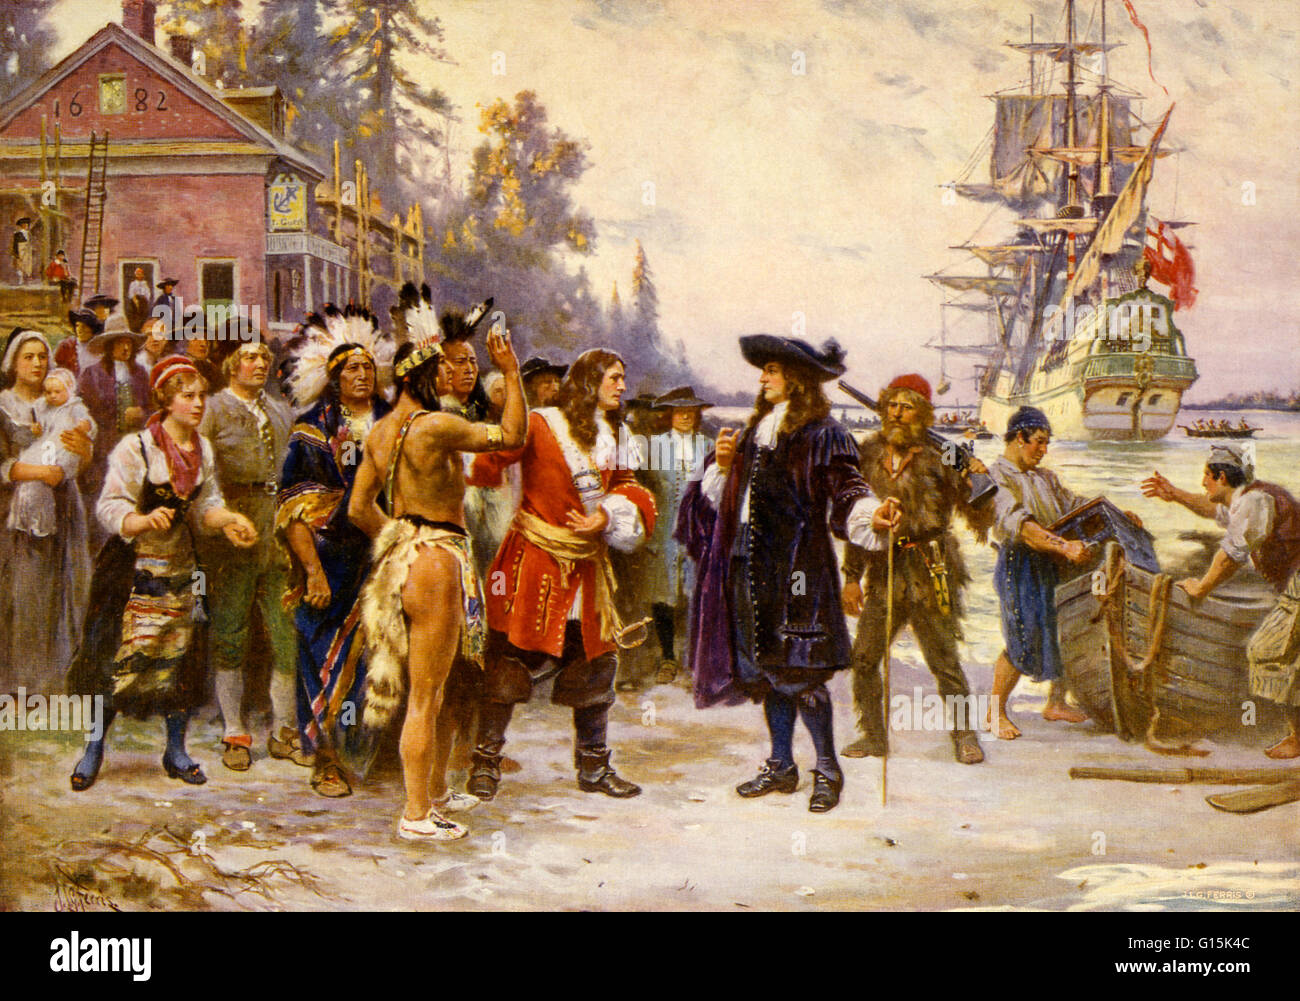 Print showing William Penn, in 1682, greeted by large group of men and women, including Native Americans. William - Stock Image